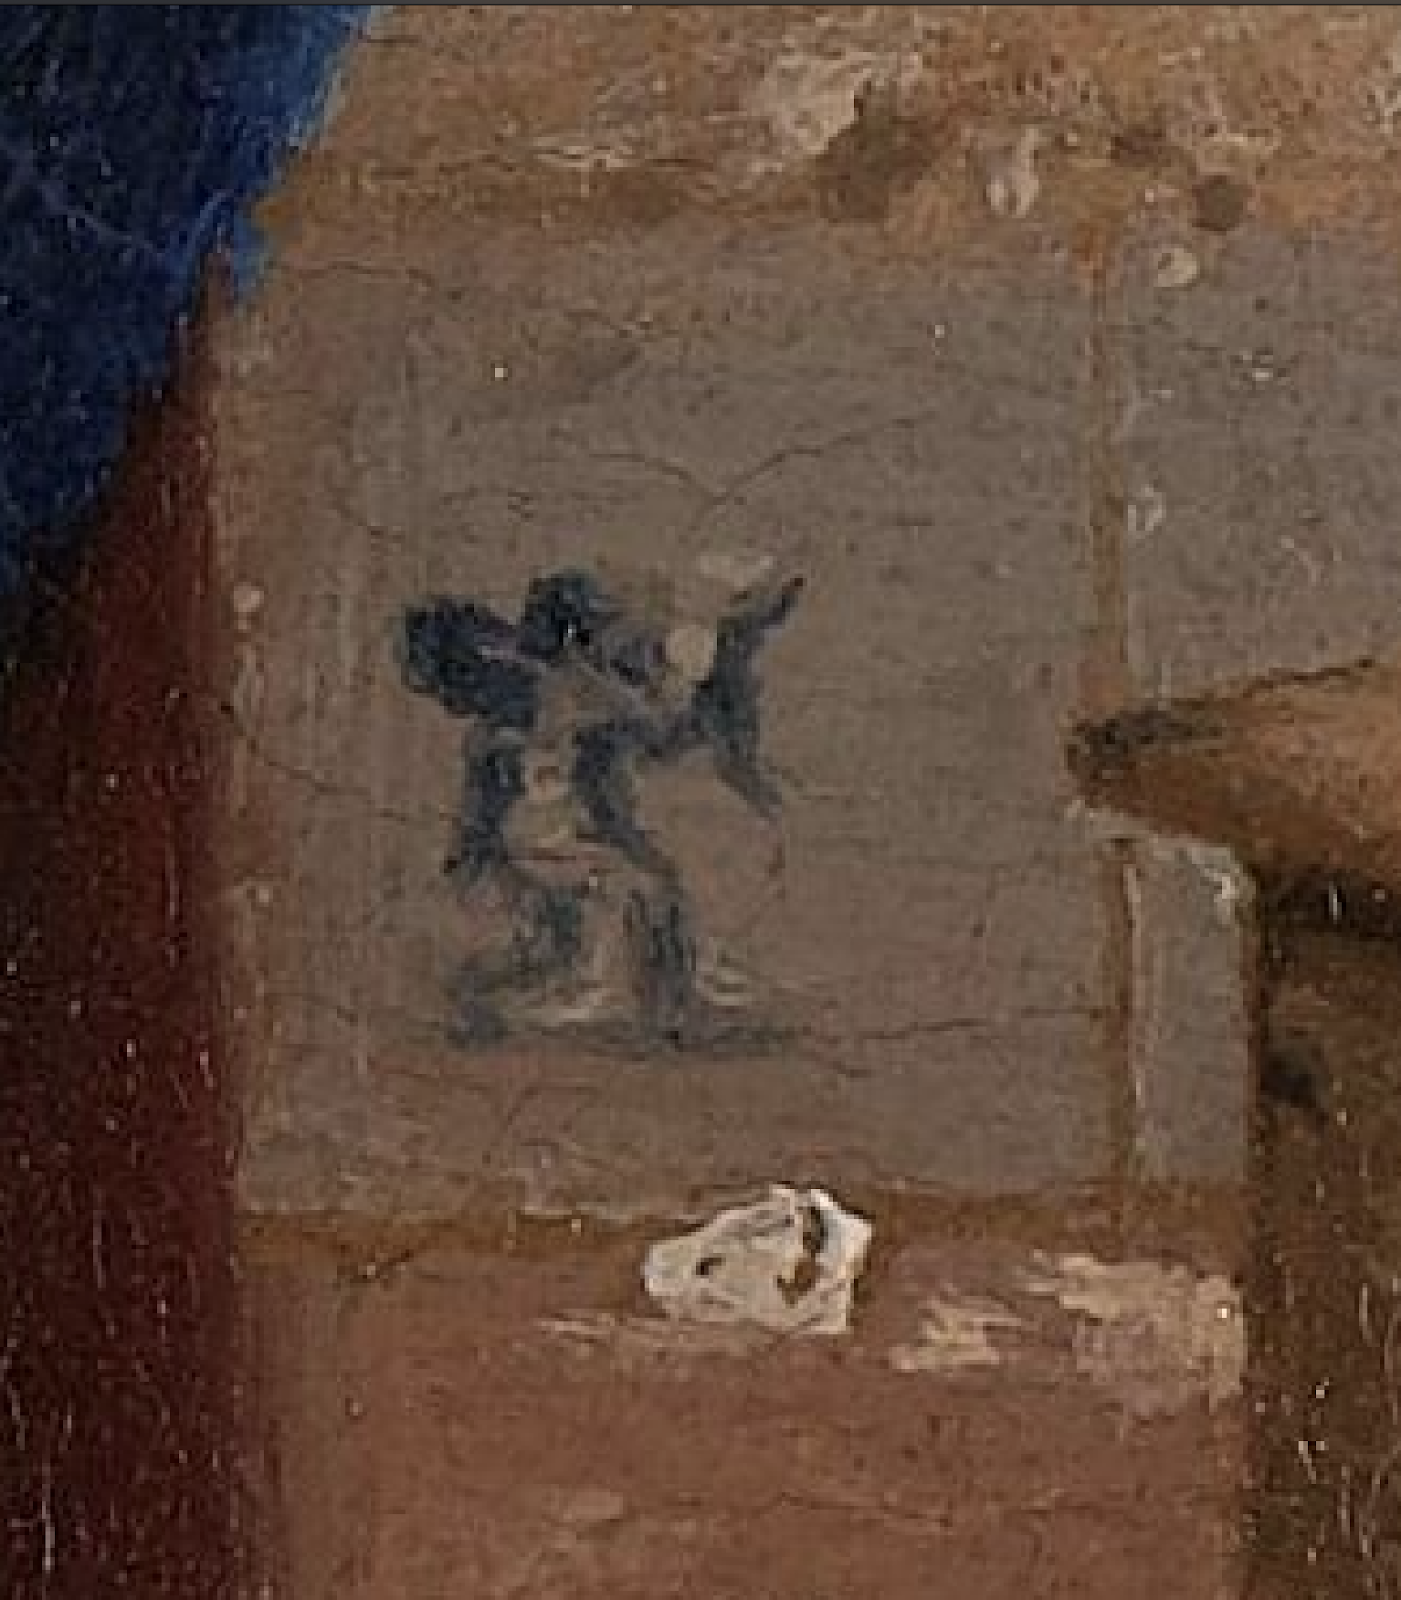 An image of Cupid on the Delft skirting tiles behind Vermeer's the Milkmaid.